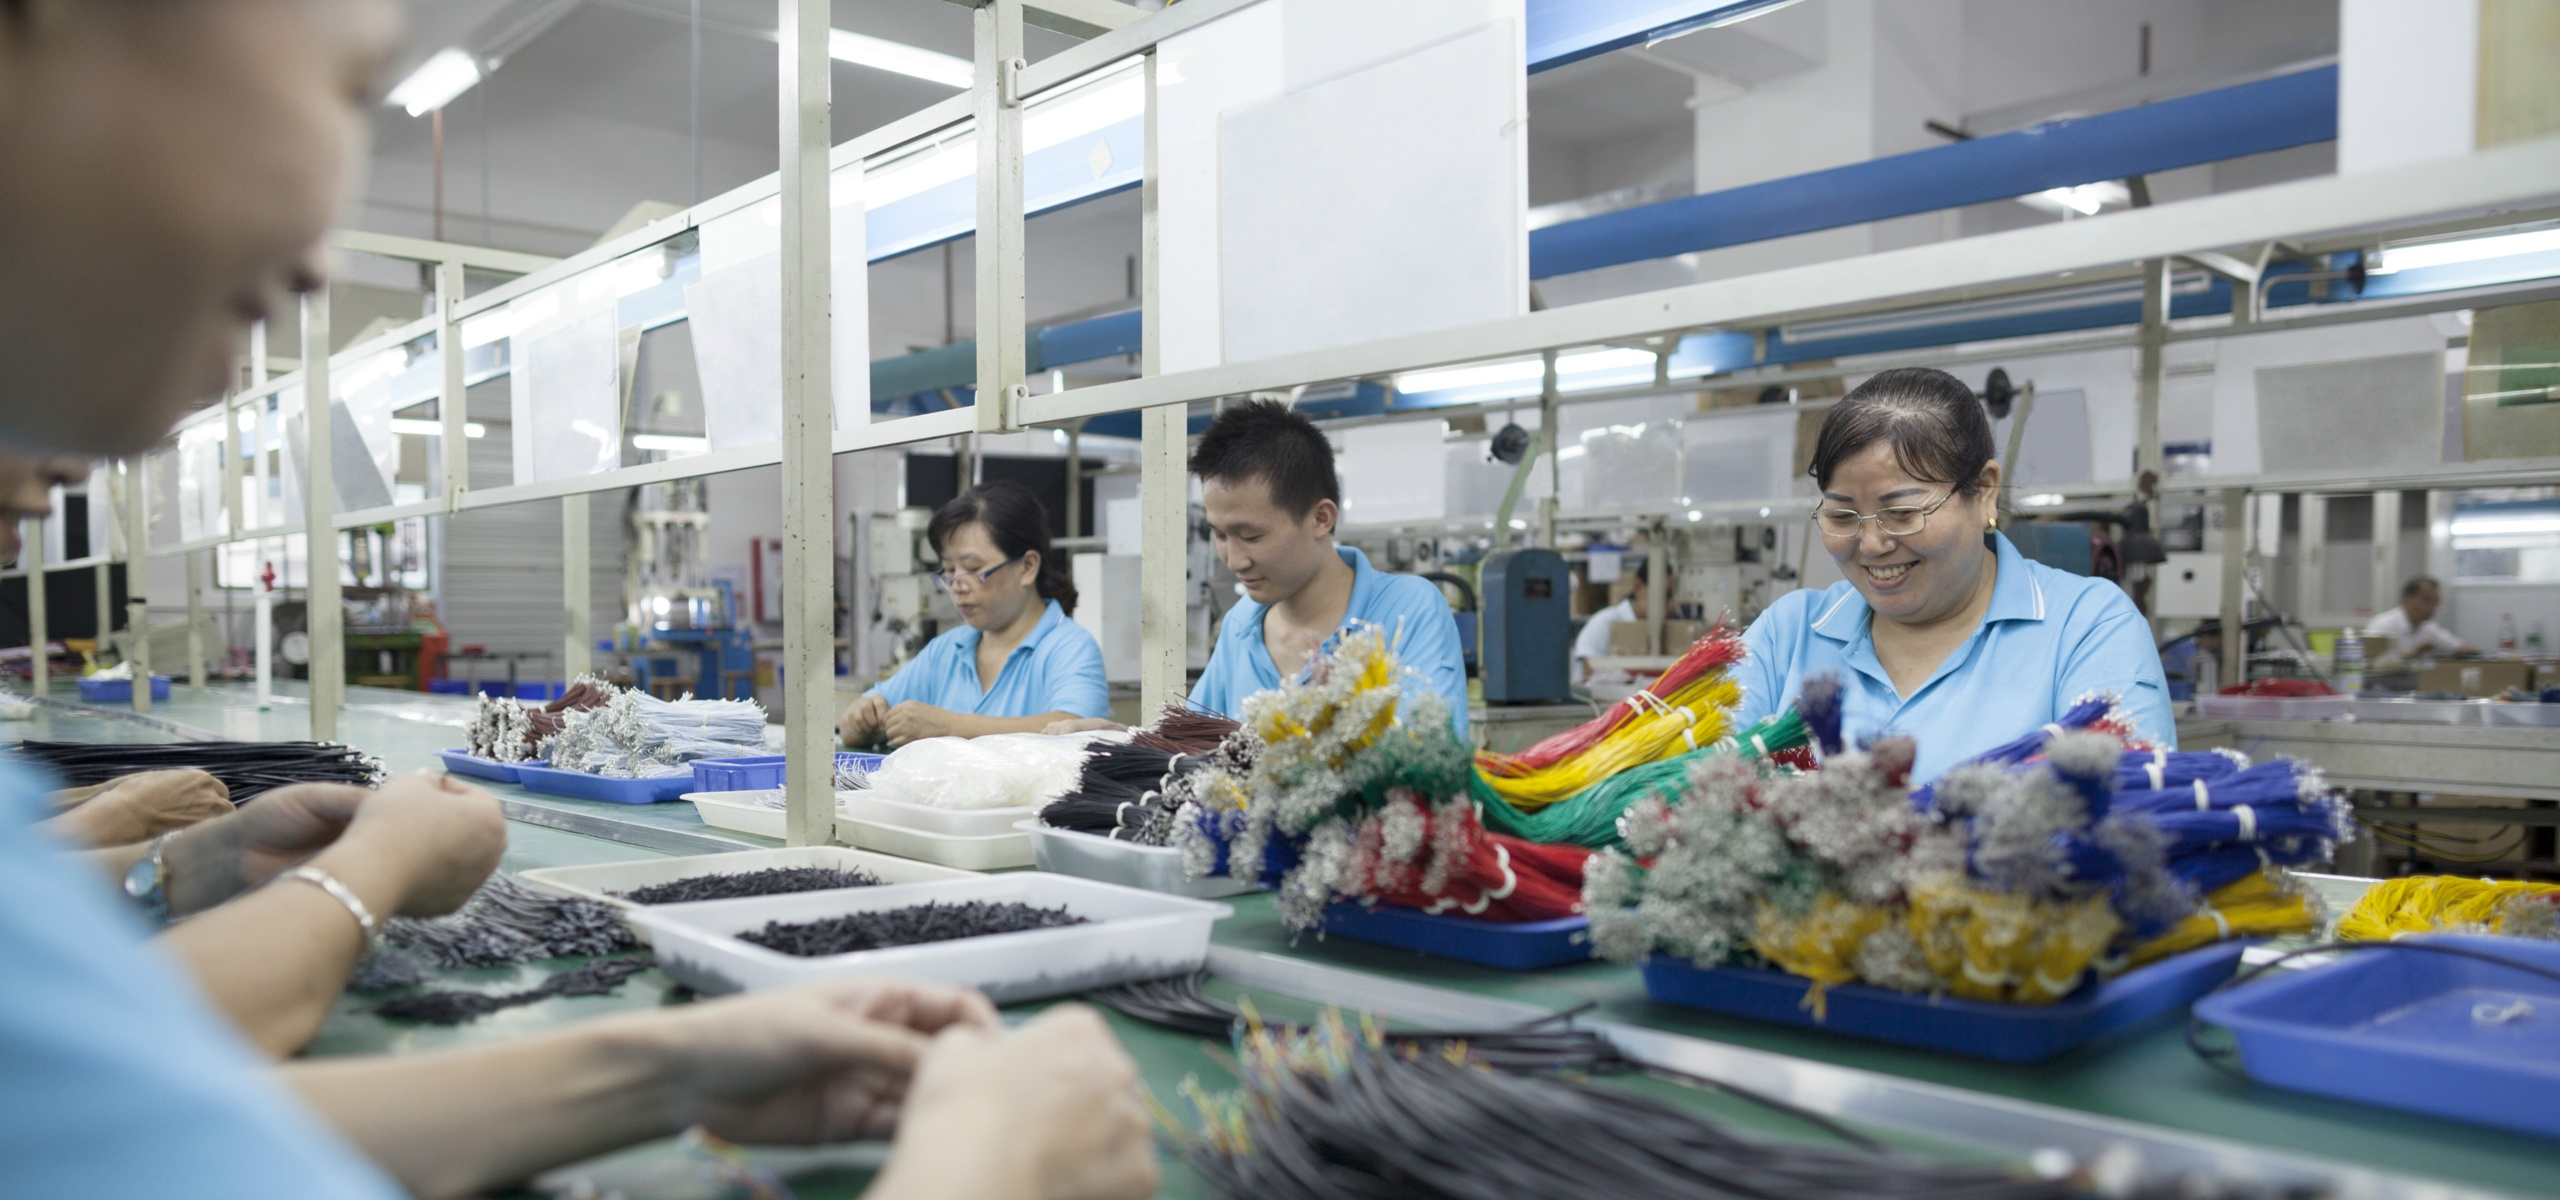 Human Rights Protections in International Supply Chains - Protecting Workers and Managing Company Risk